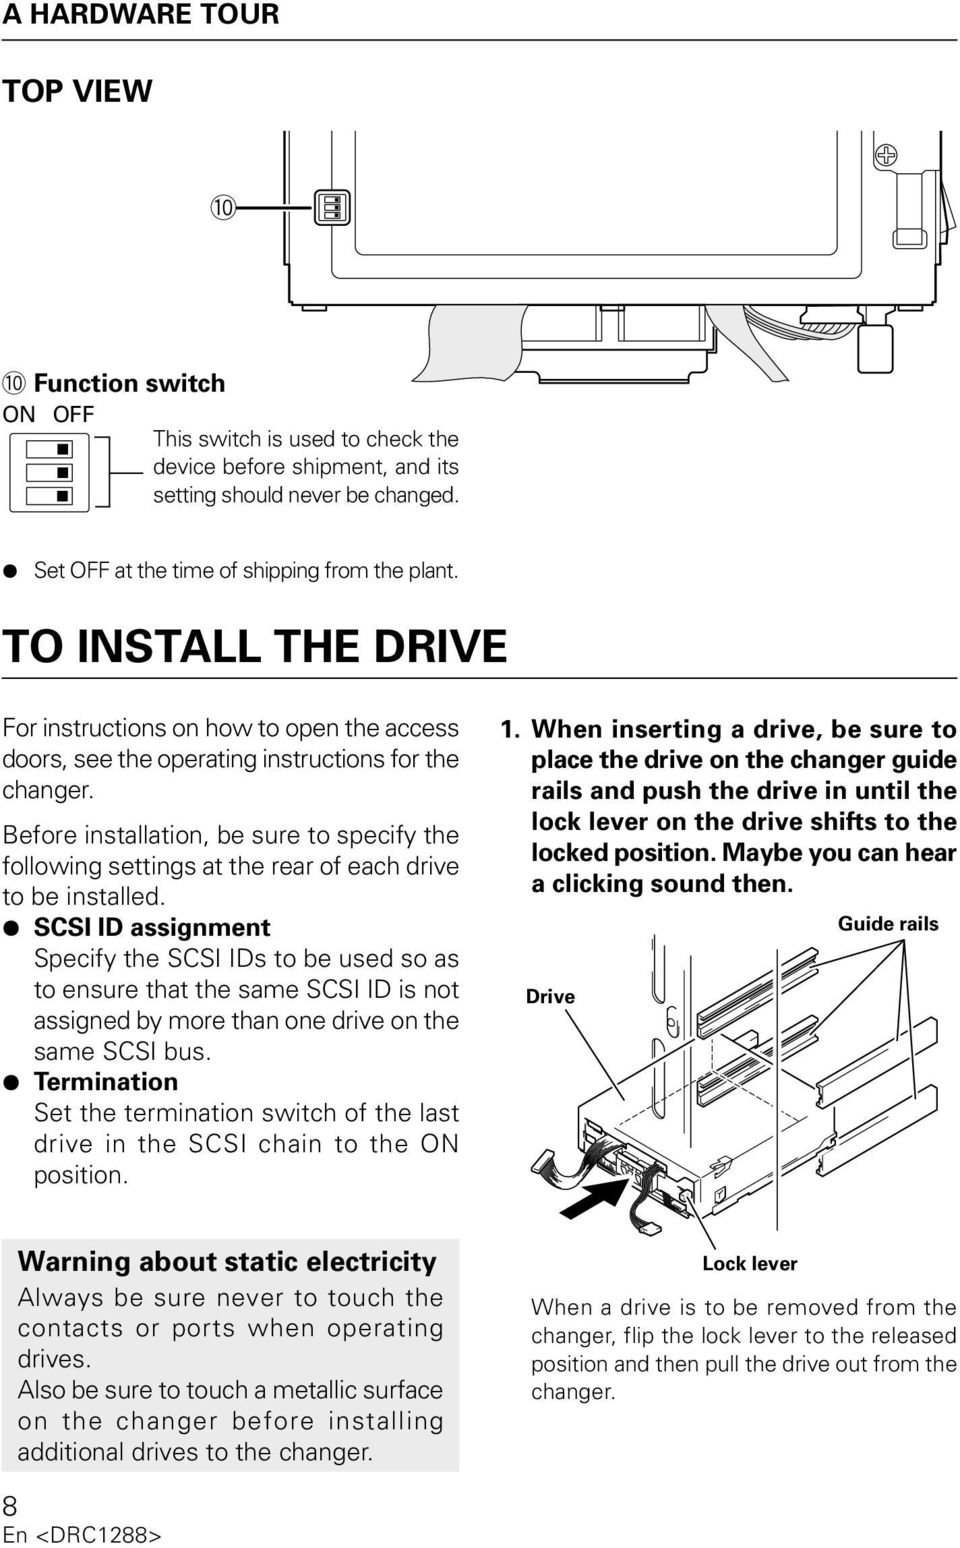 Before installation, be sure to specify the following settings at the rear of each drive to be installed.